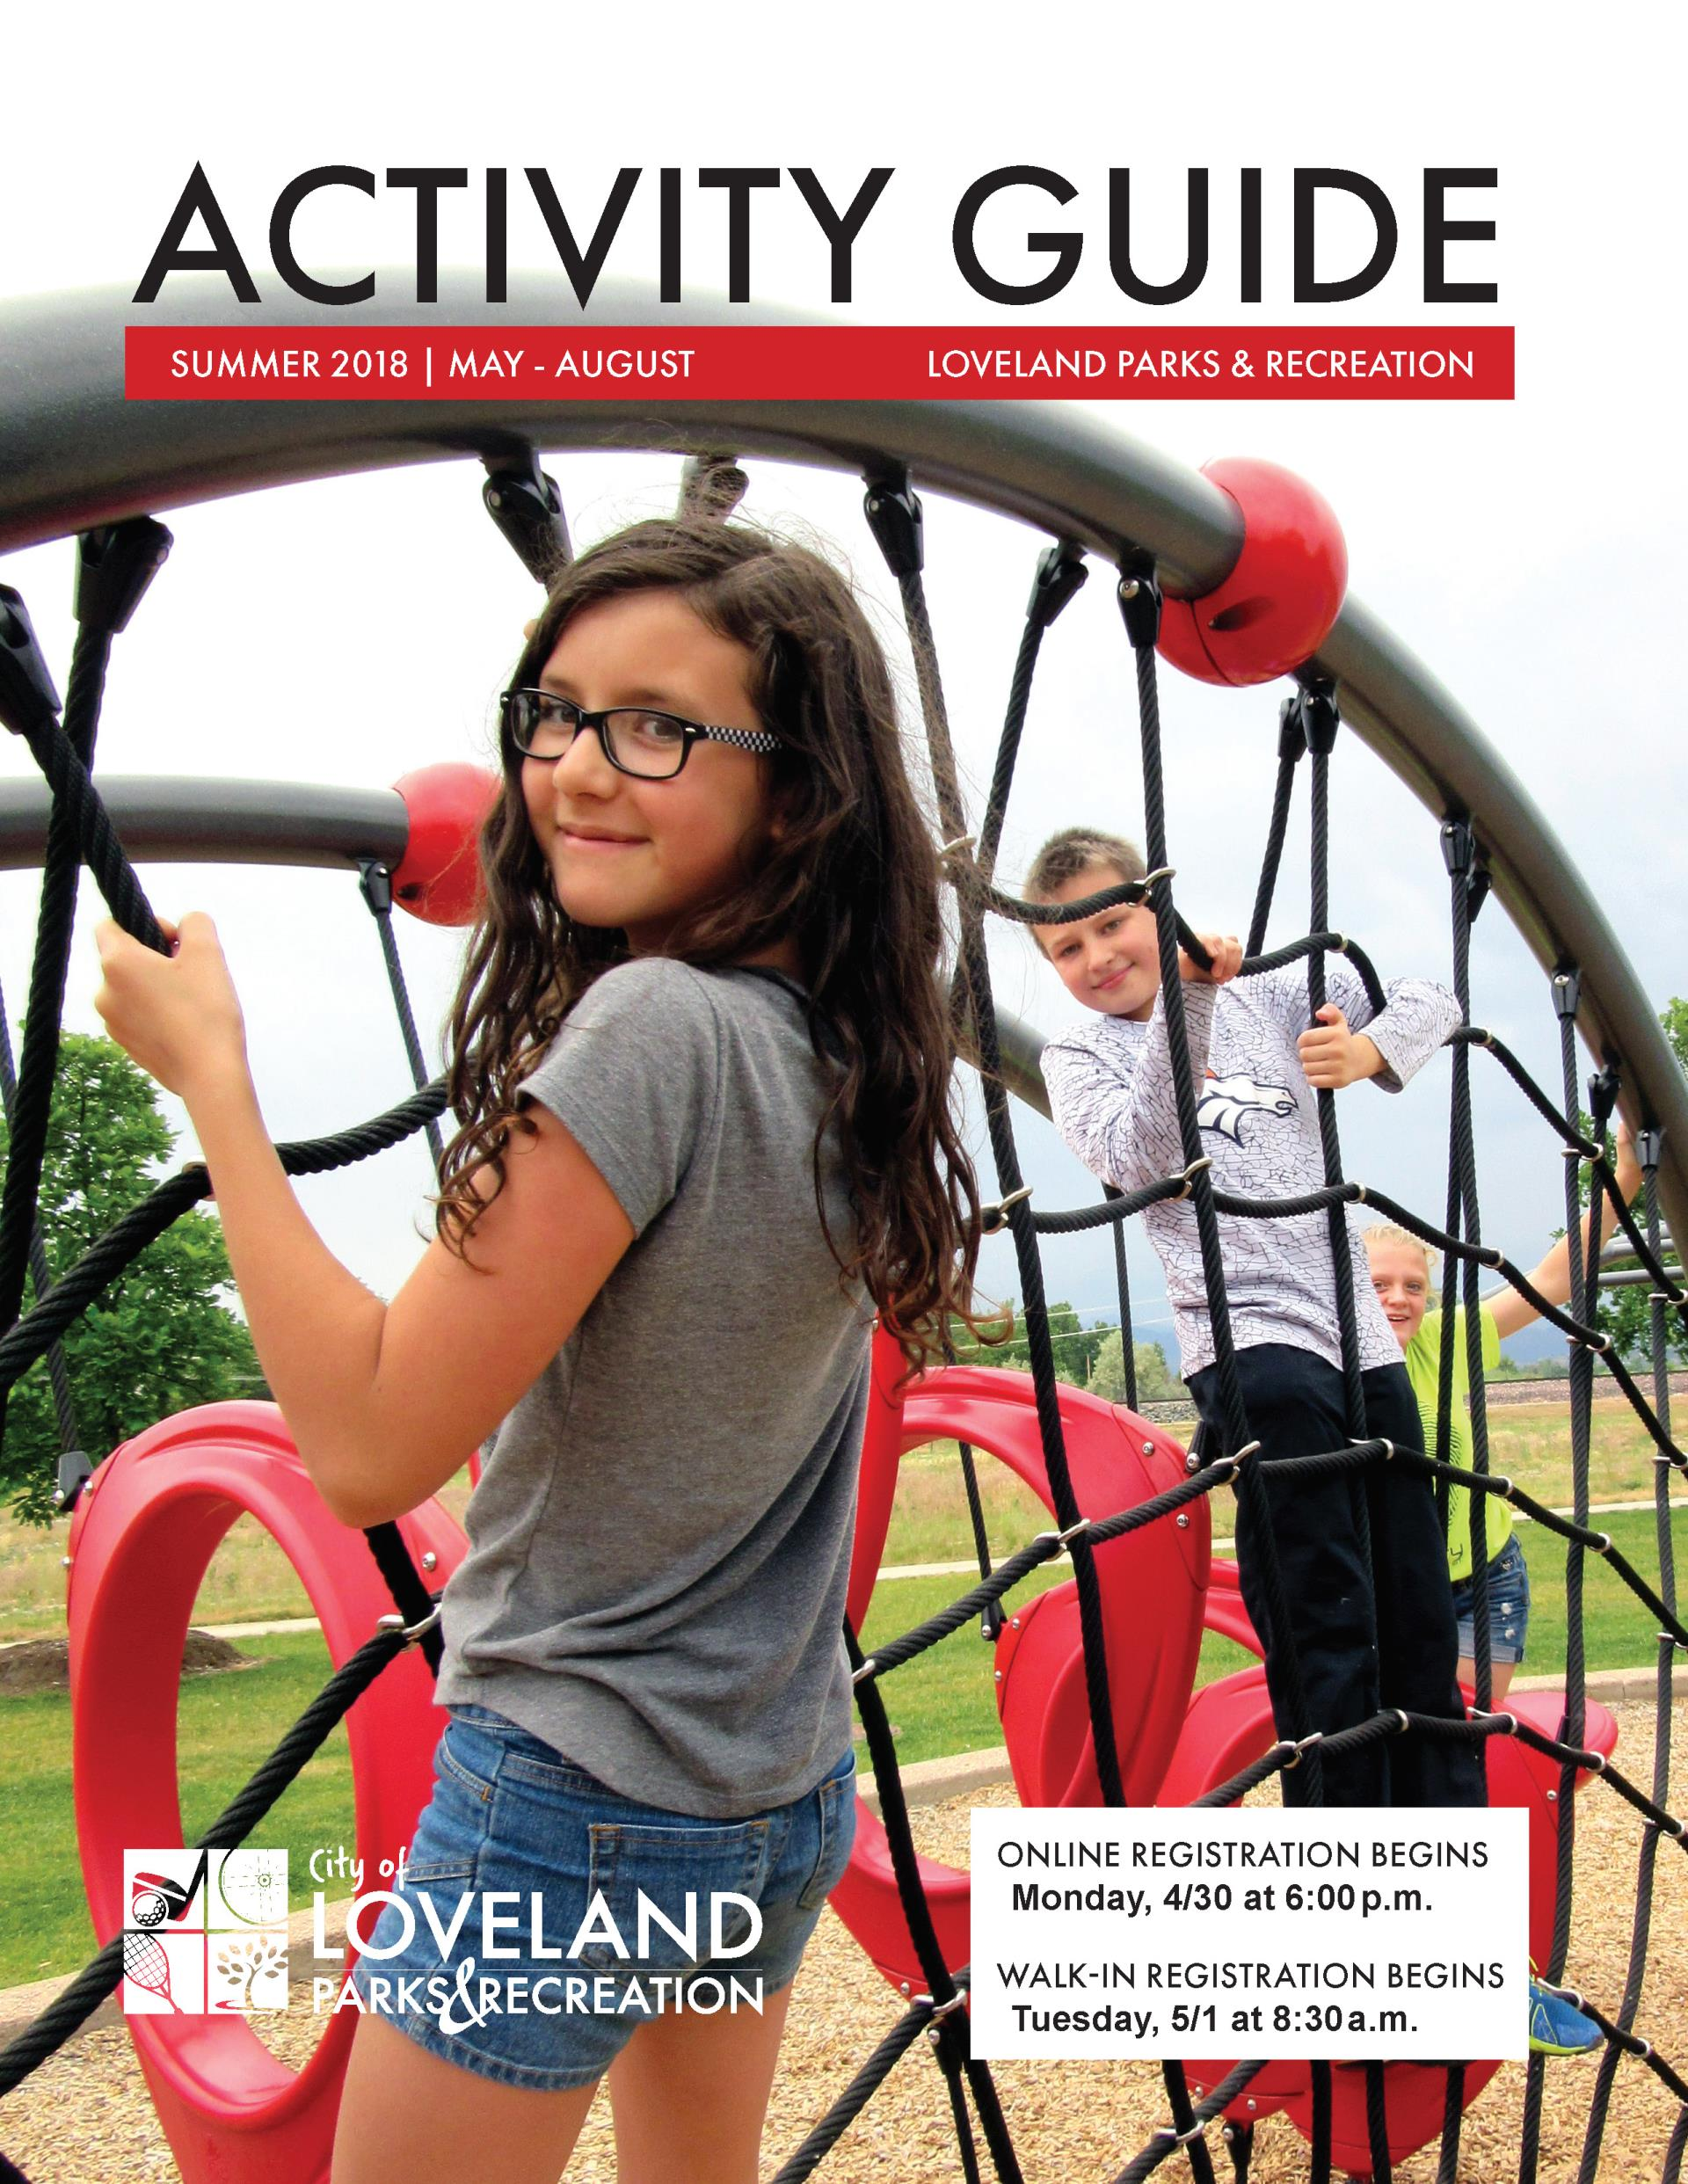 Loveland Summer 2018 Activity Guide